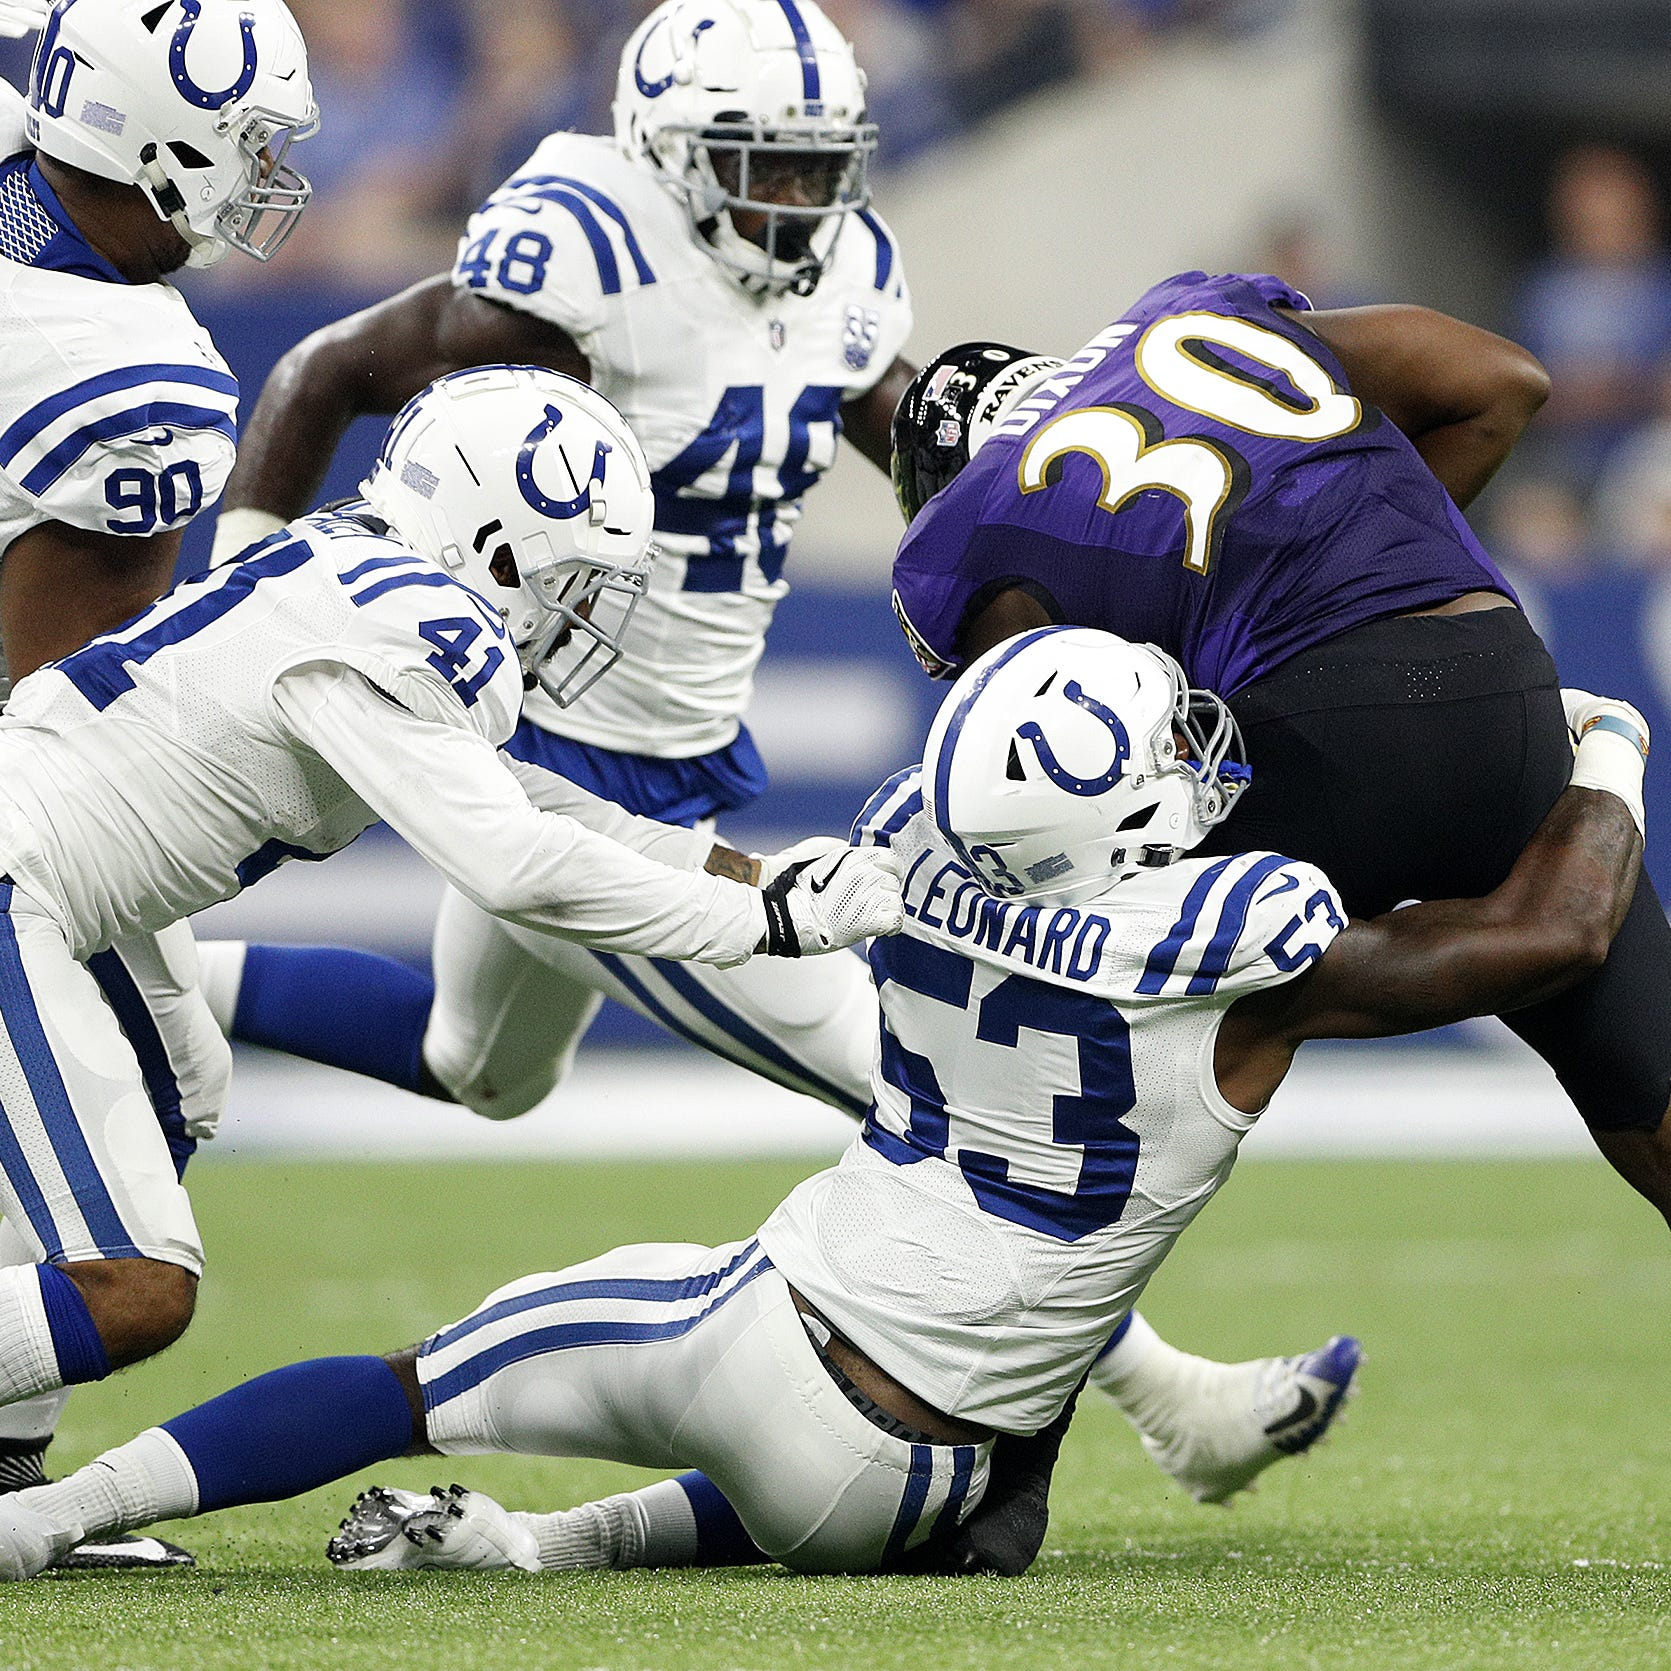 Rookie Darius Leonard cements starting role in Colts' linebacker corps